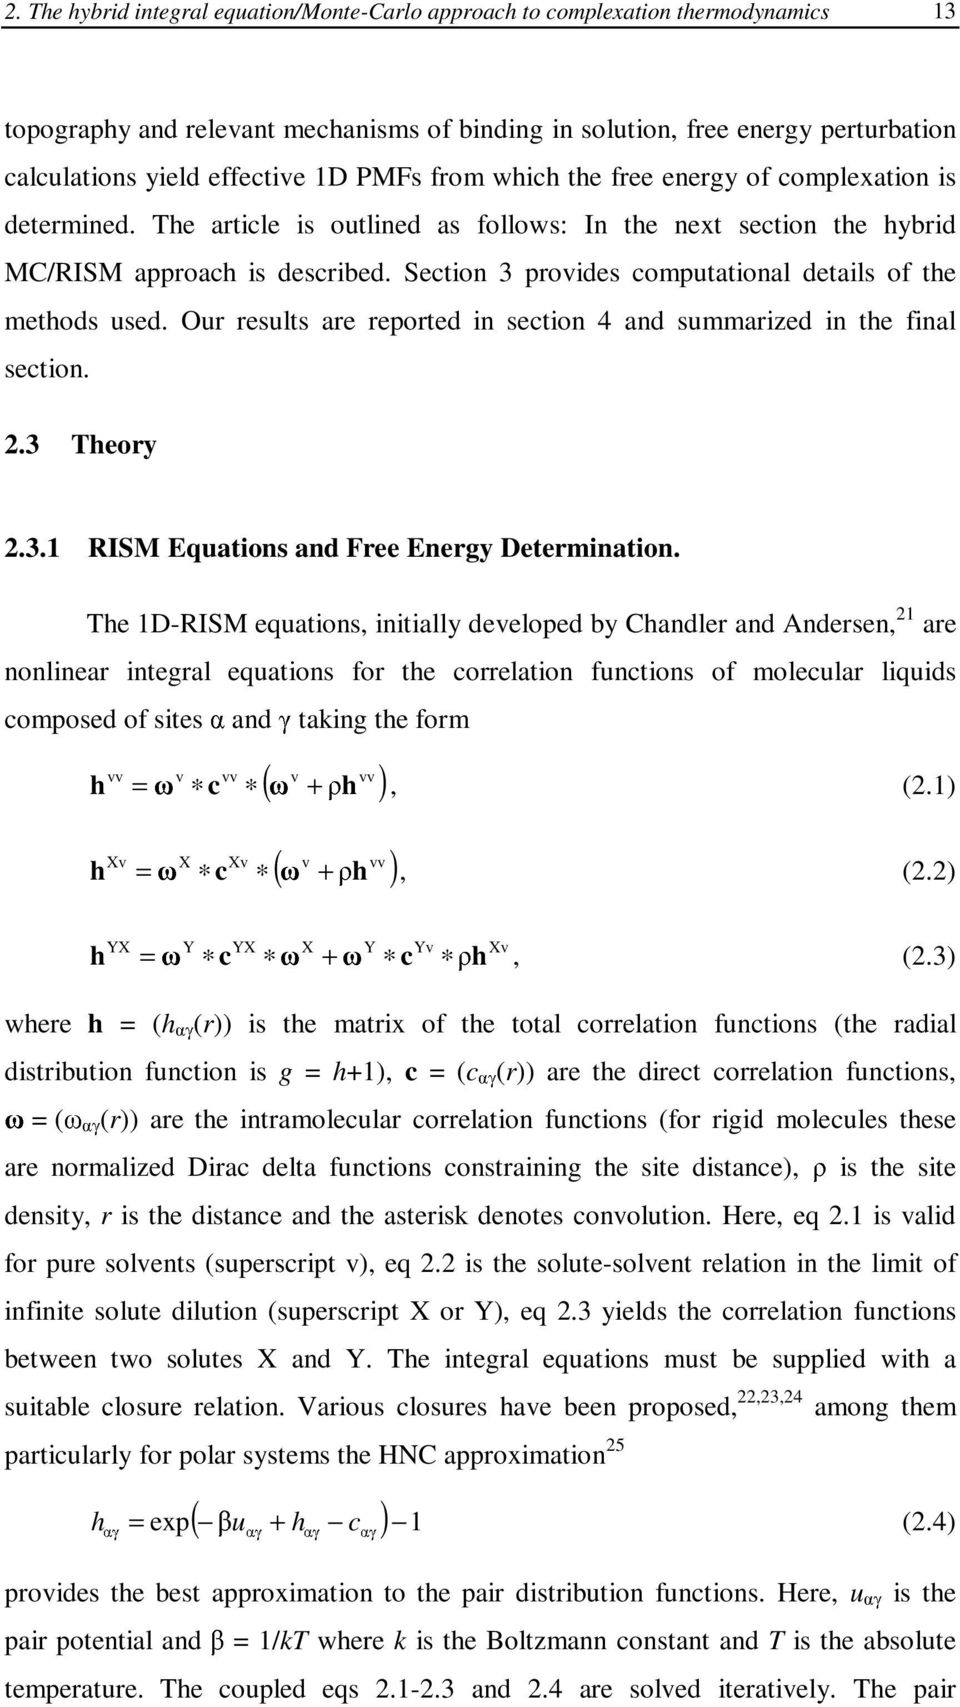 Section 3 provides computational details of the methods used. ur results are reported in section 4 and summarized in the final section. 2.3 Theory 2.3.1 RISM Equations and Free Energy Determination.